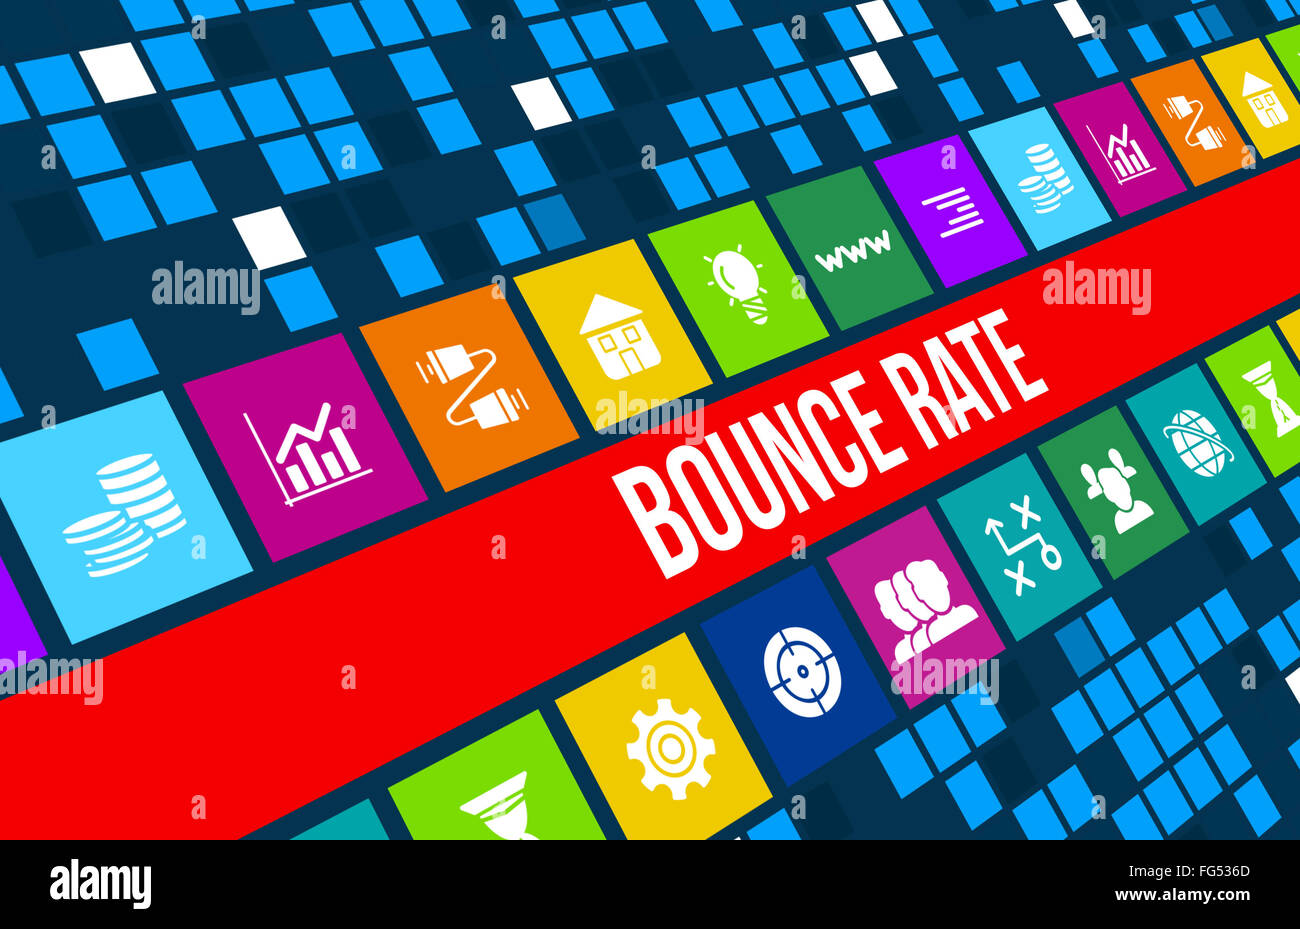 Bounce Rate concept image with business icons and copyspace. - Stock Image